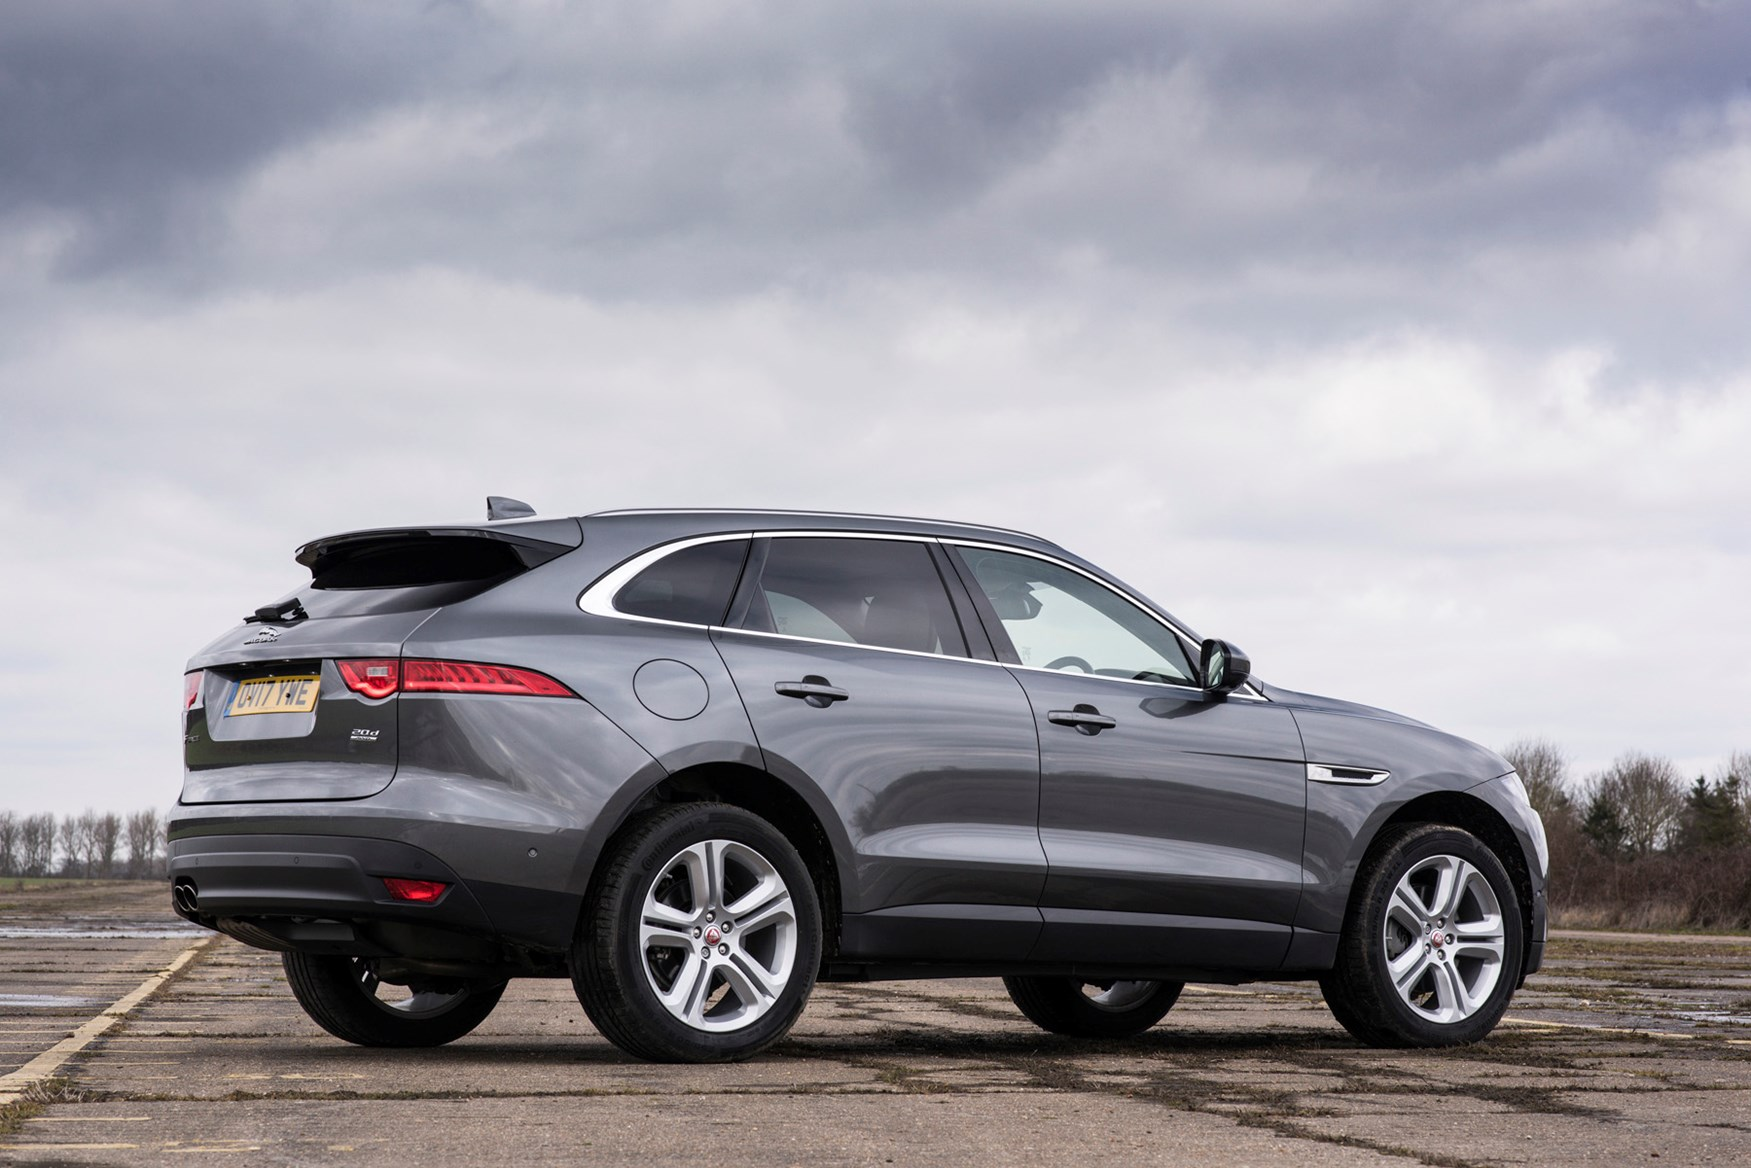 Grey 2017 Jaguar F-Pace SUV rear three-quarter